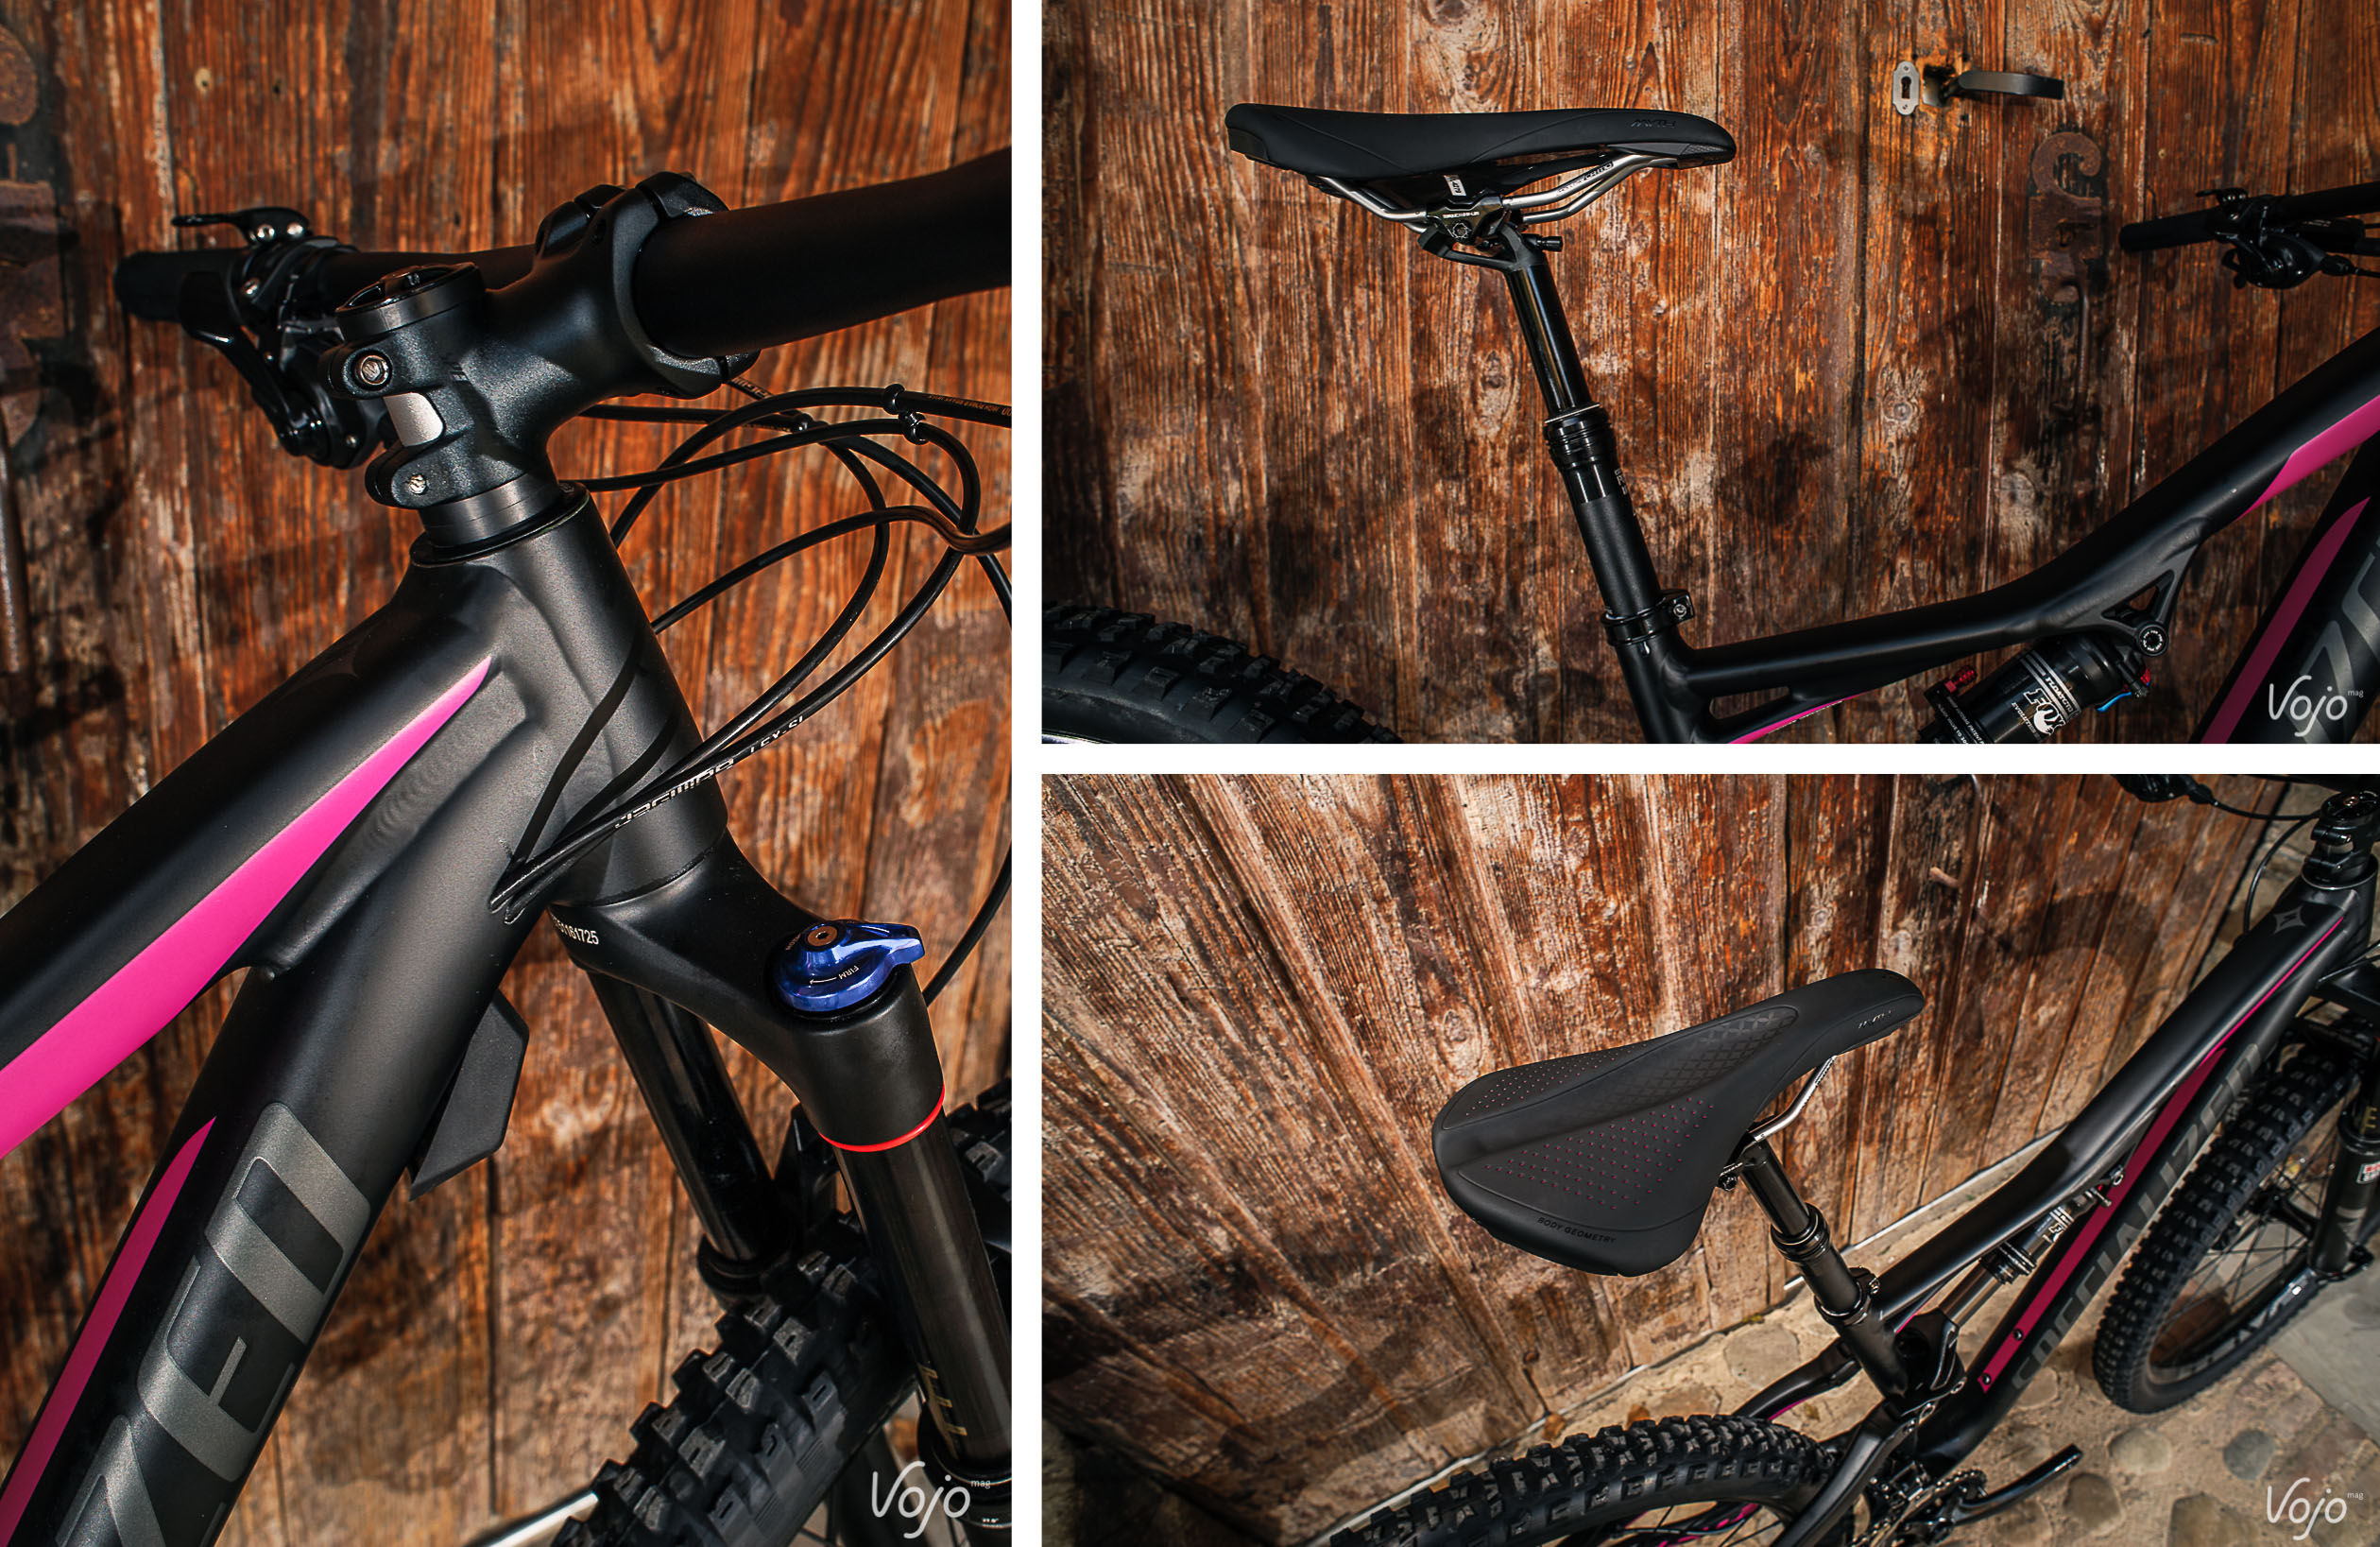 Compo_8_Specialized_Stumpjumper_2016_Swat_Copyright_OBeart_VojoMag-1